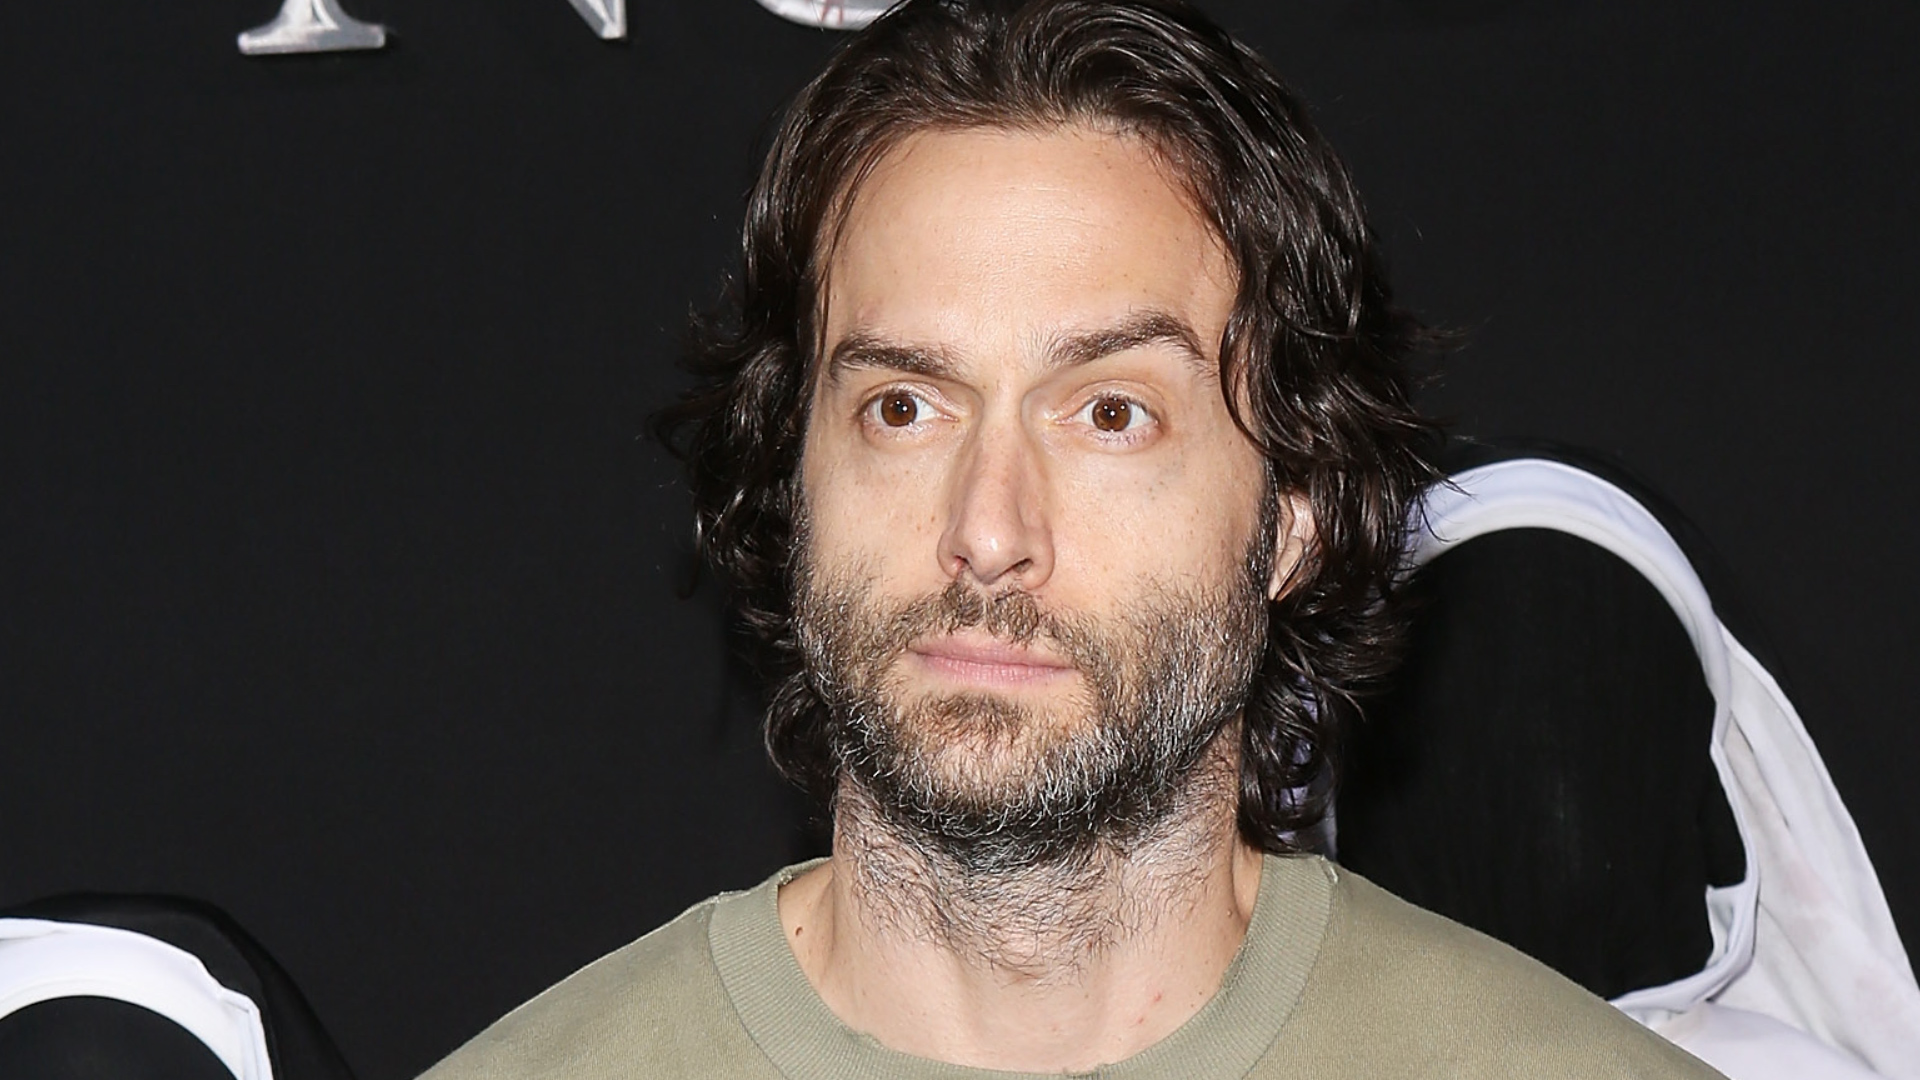 Chris D'Elia denies accusations of sexual misconduct with girls